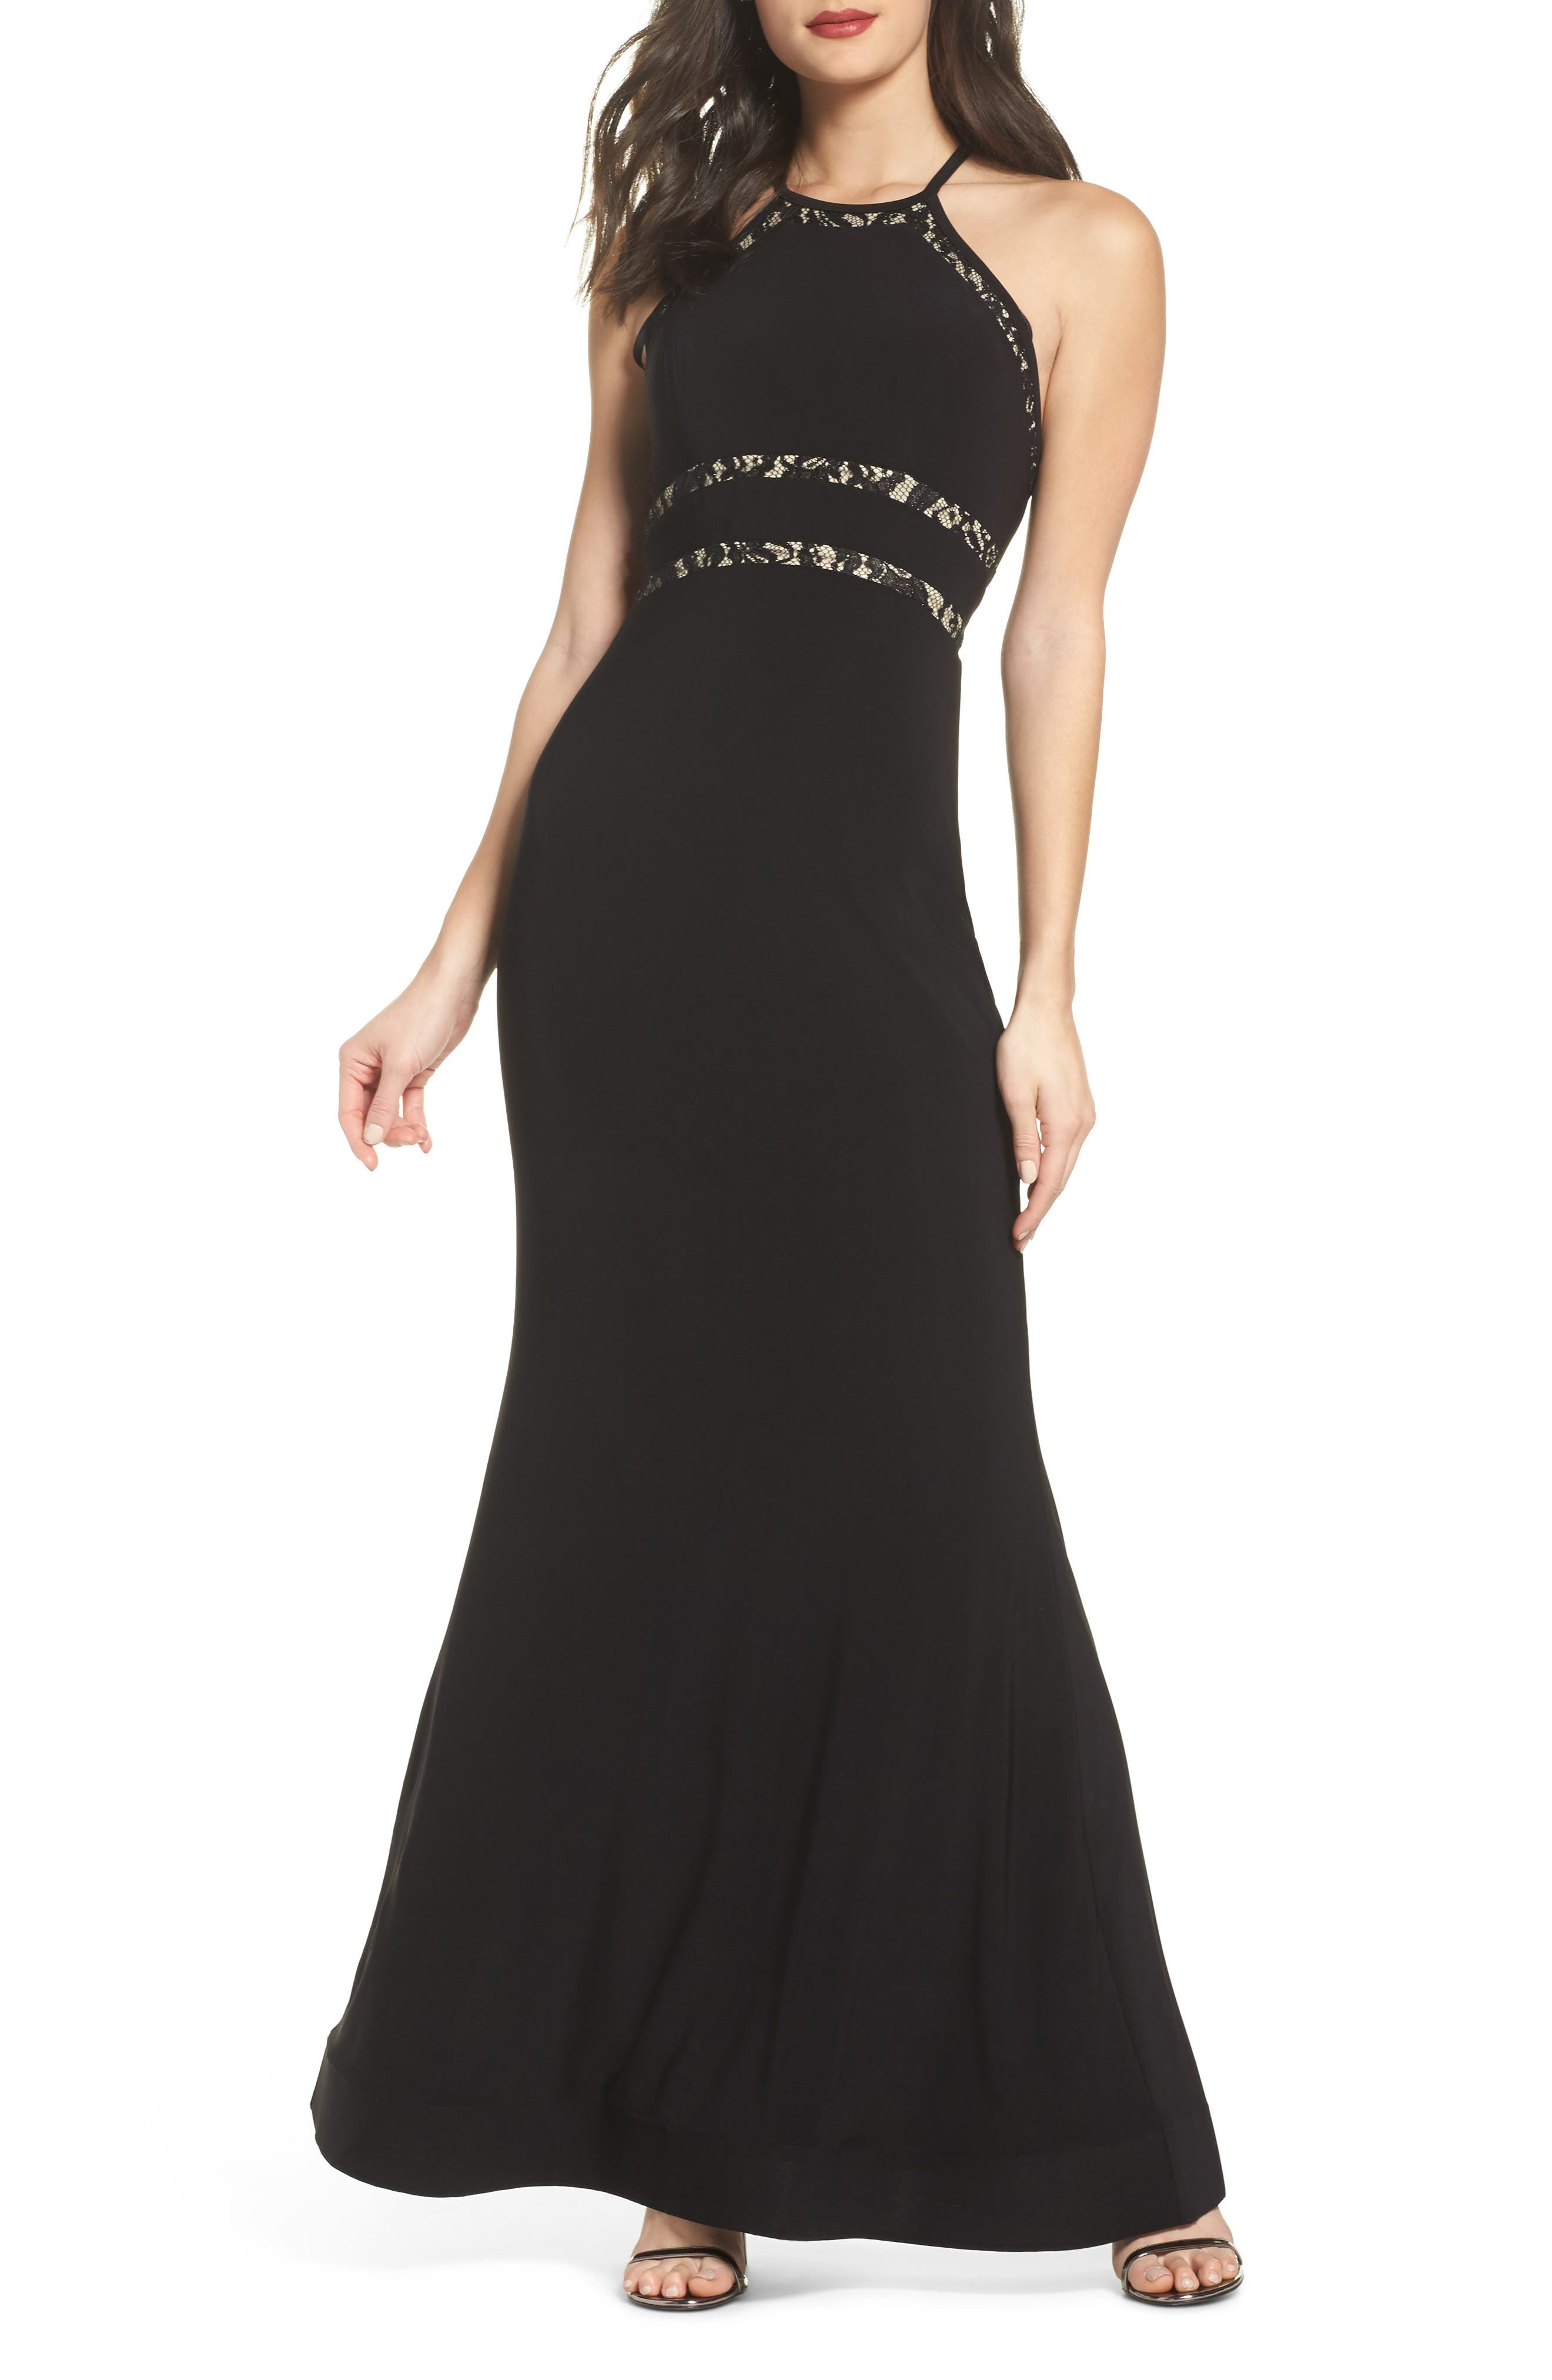 Sequin Hearts Ruffle Back Halter Gown